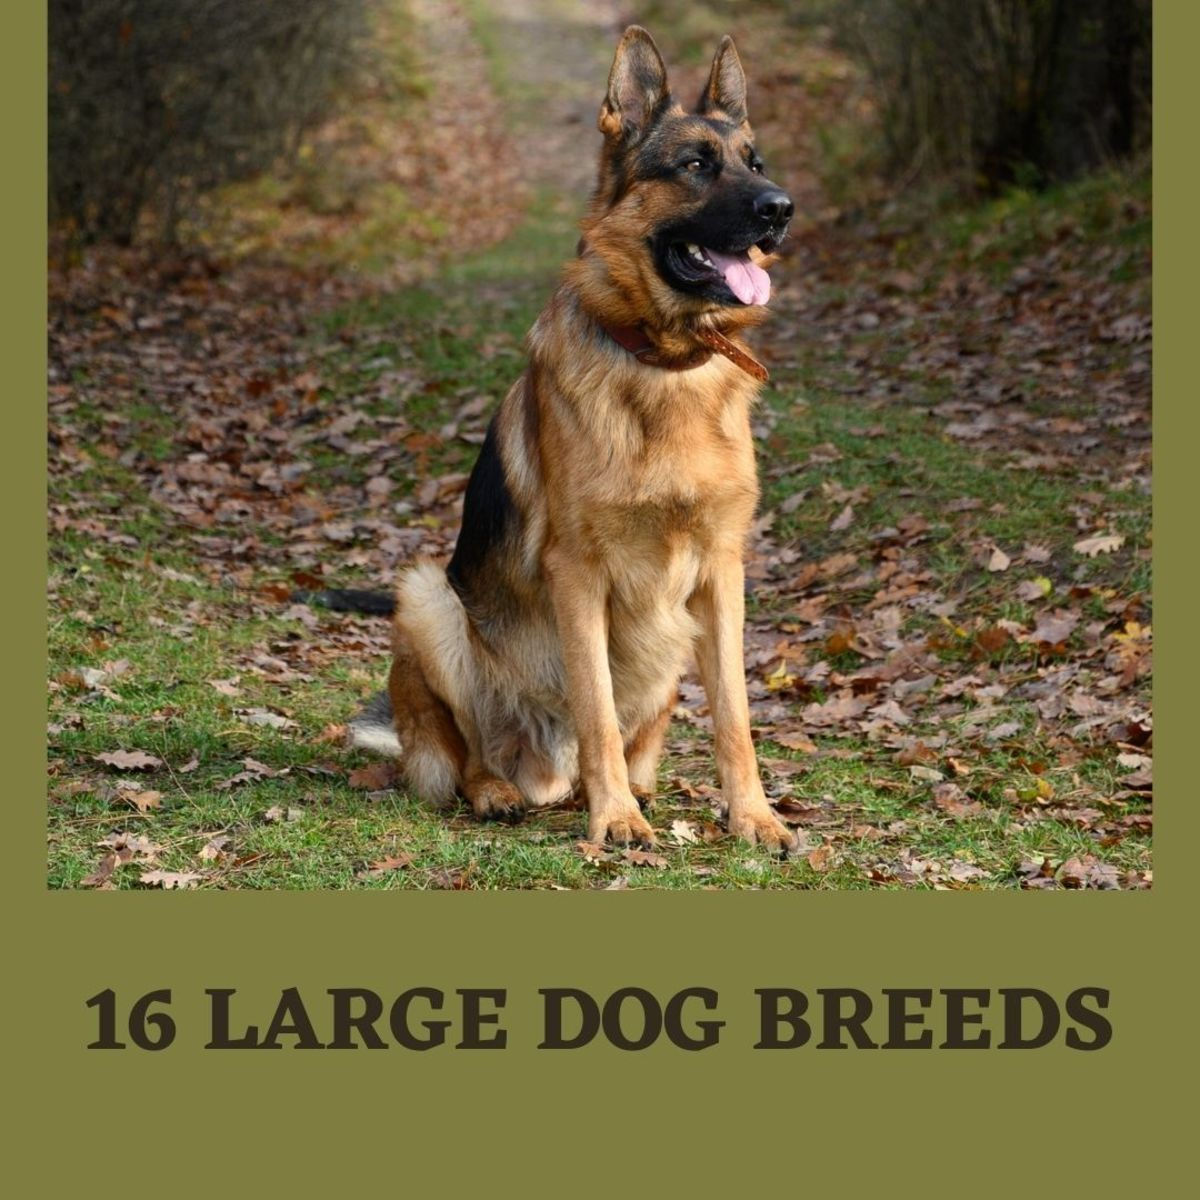 There are many types of big dogs, but they have different temperaments. Find out more about how they differ from each other.